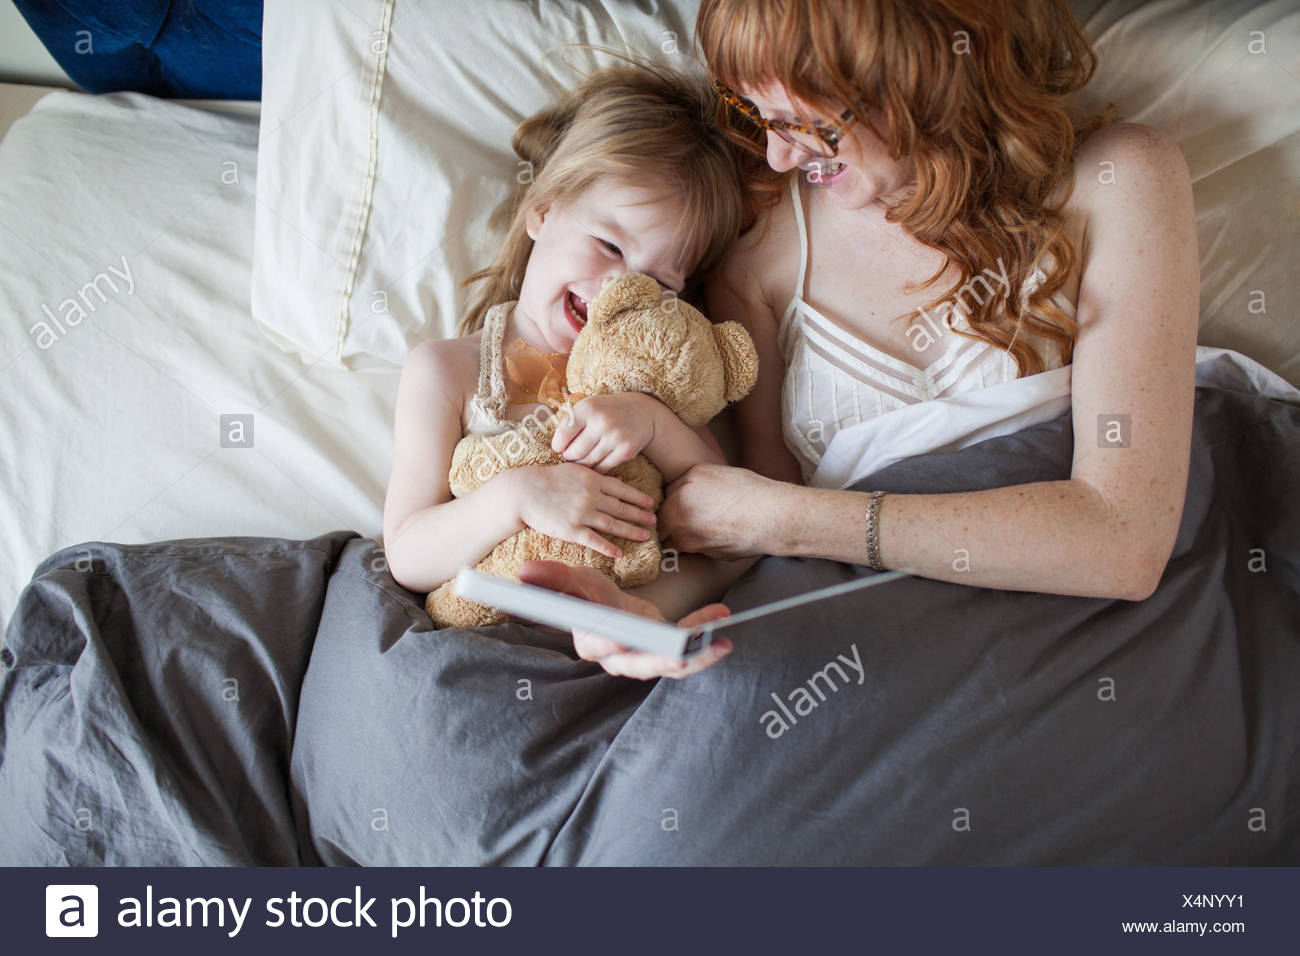 Mother and daughter lying on bed cuddling soft toy - Stock Image